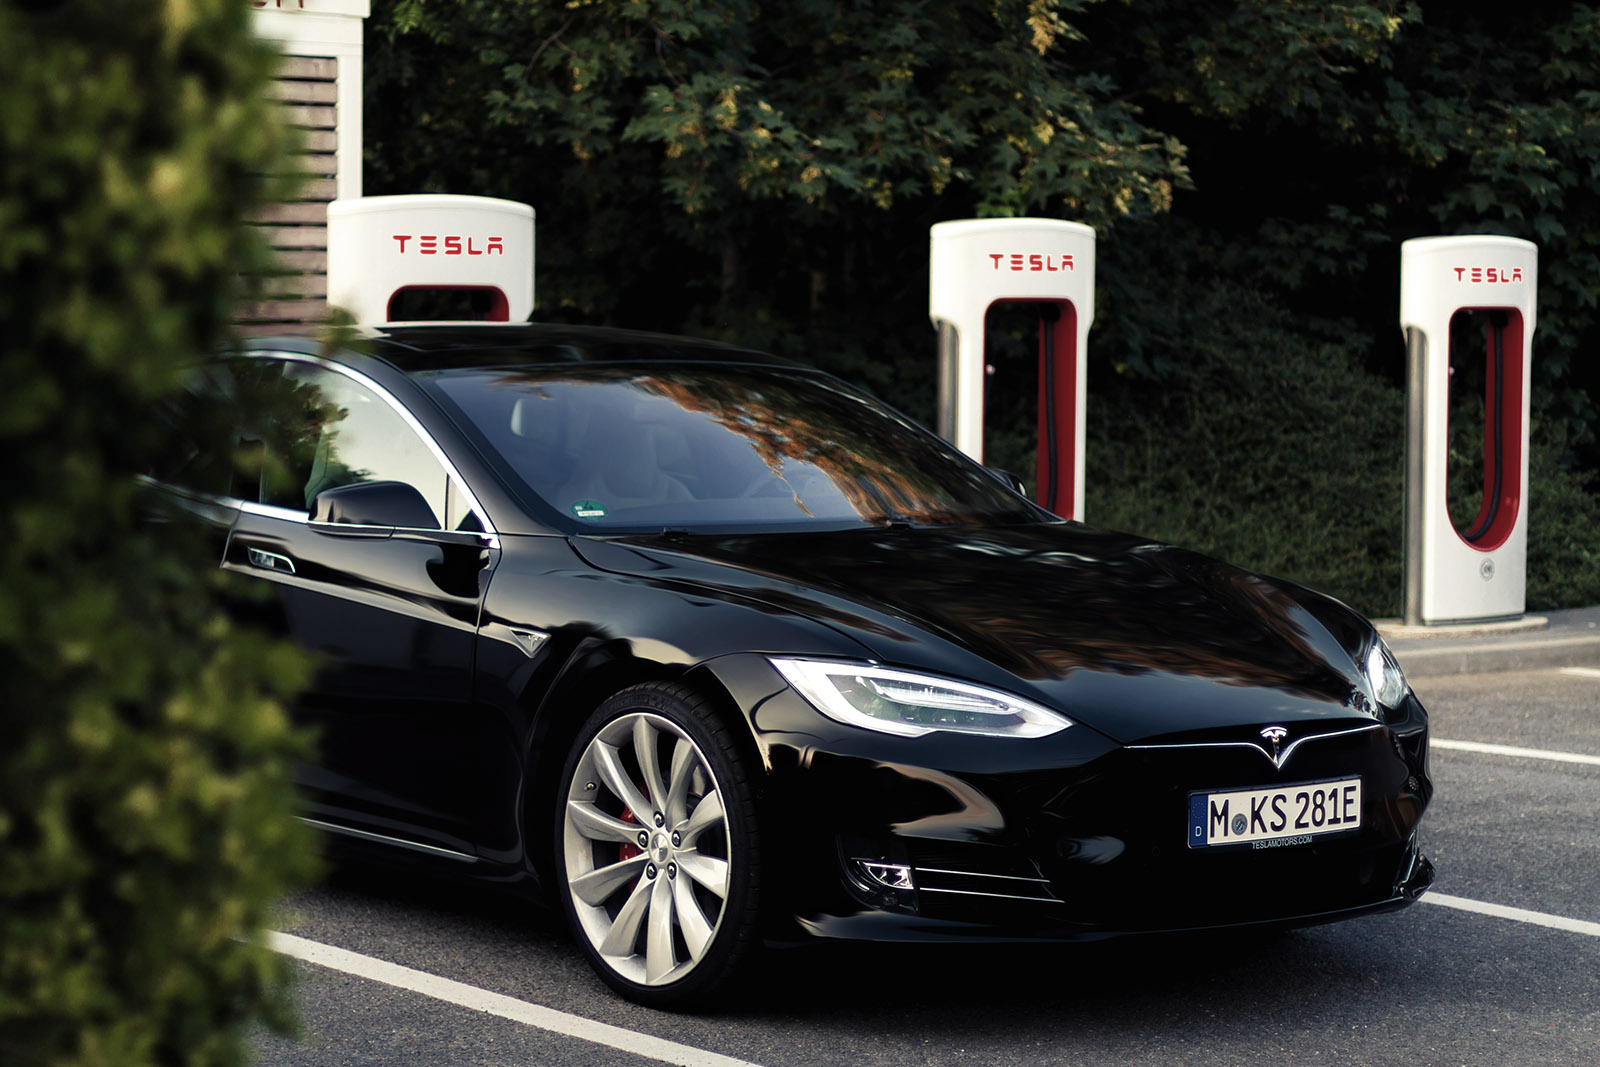 tesla model s p90d elektro limousine mit supersportwagen flair. Black Bedroom Furniture Sets. Home Design Ideas